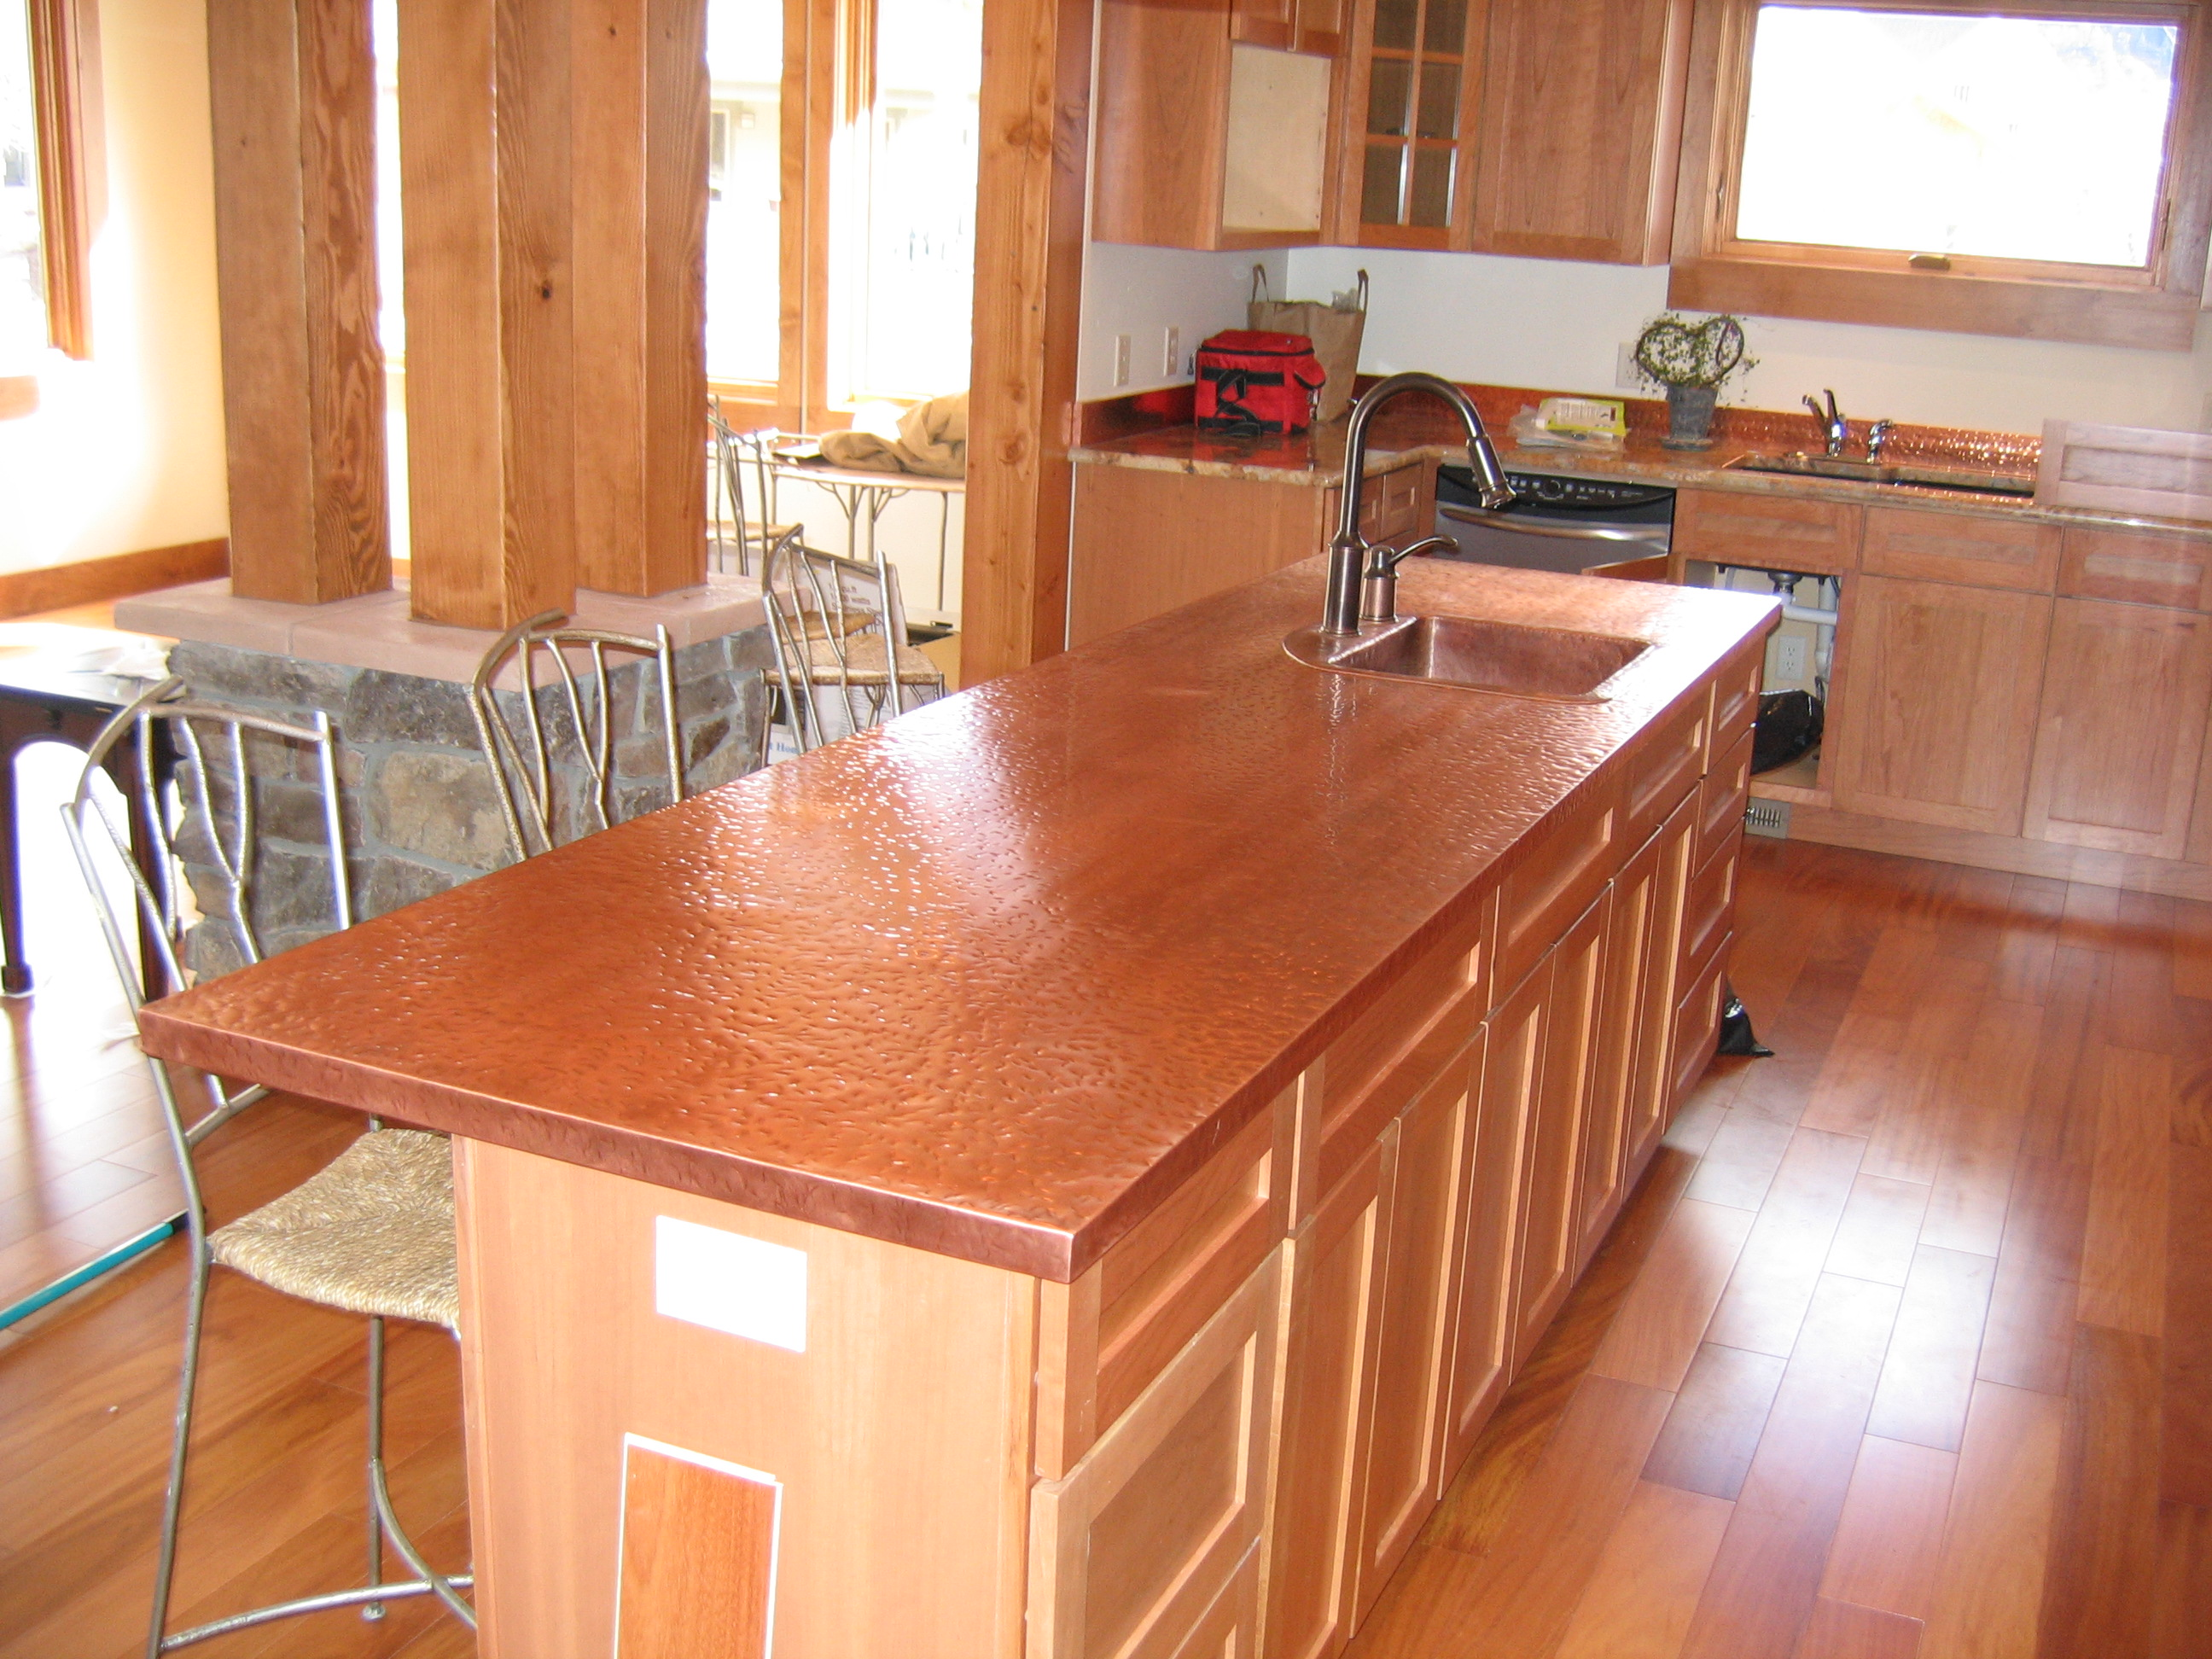 copper countertops cost installed plus pros and cons of